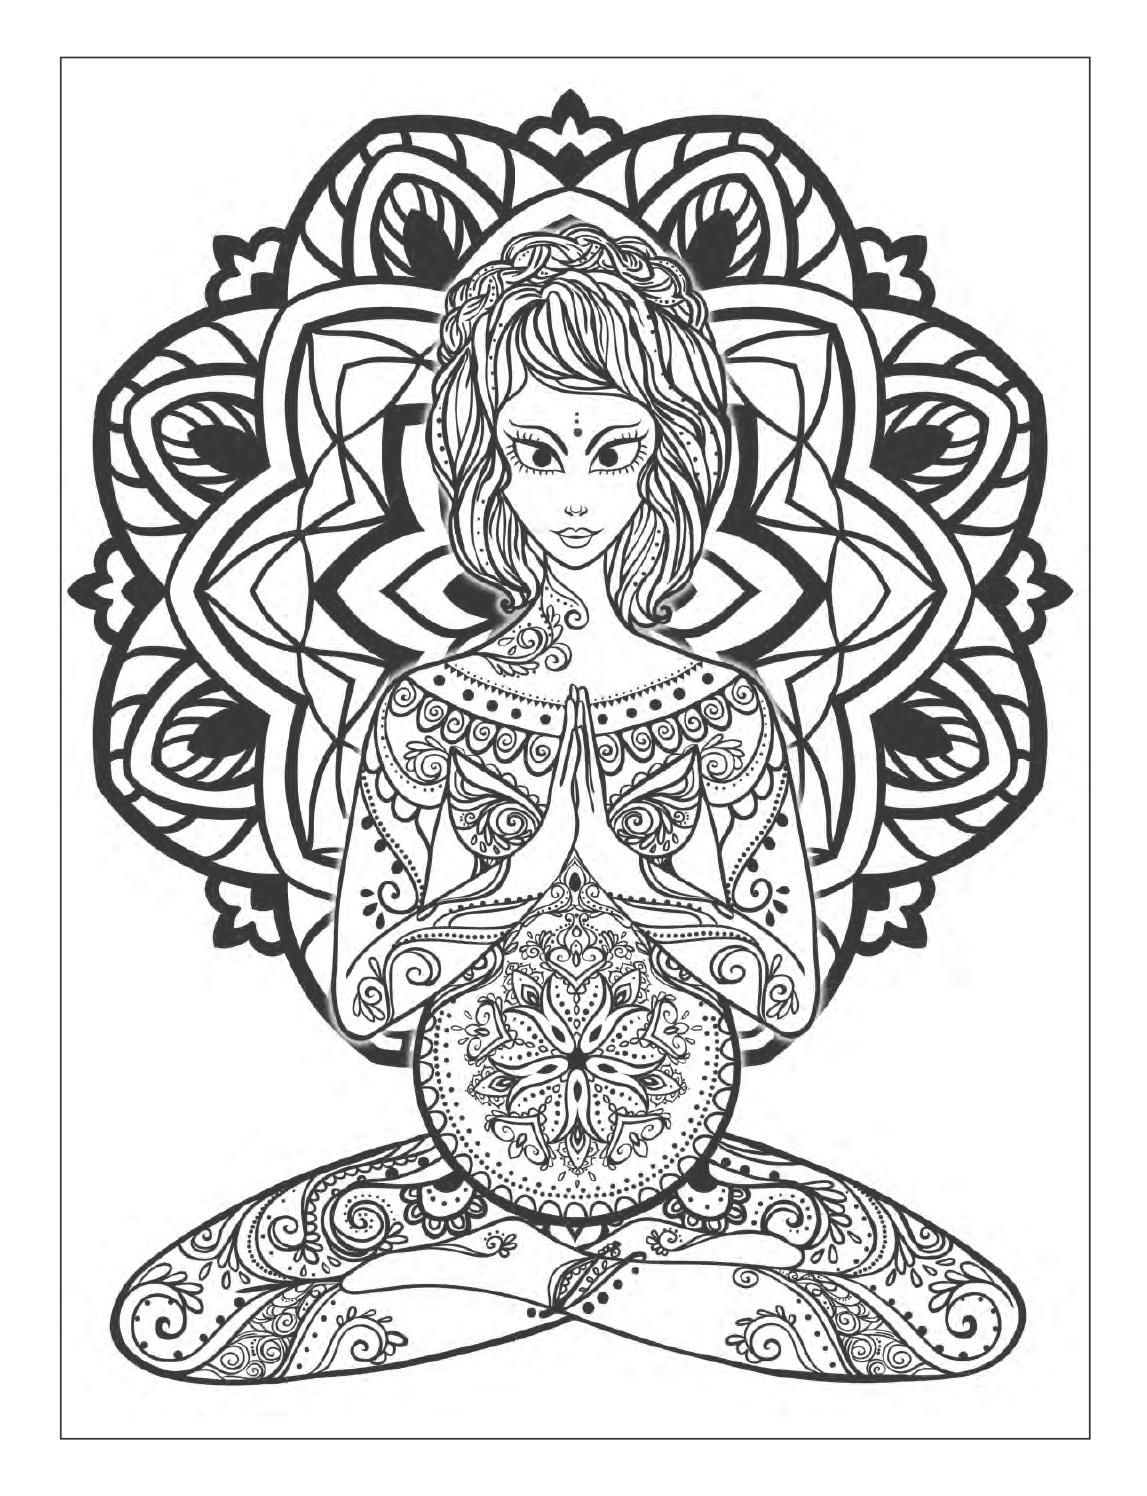 Yoga And Meditation Coloring Book For Adults With Yoga Poses And Mandalas Mandala Coloring Books Coloring Books Coloring Pages [ 1496 x 1147 Pixel ]